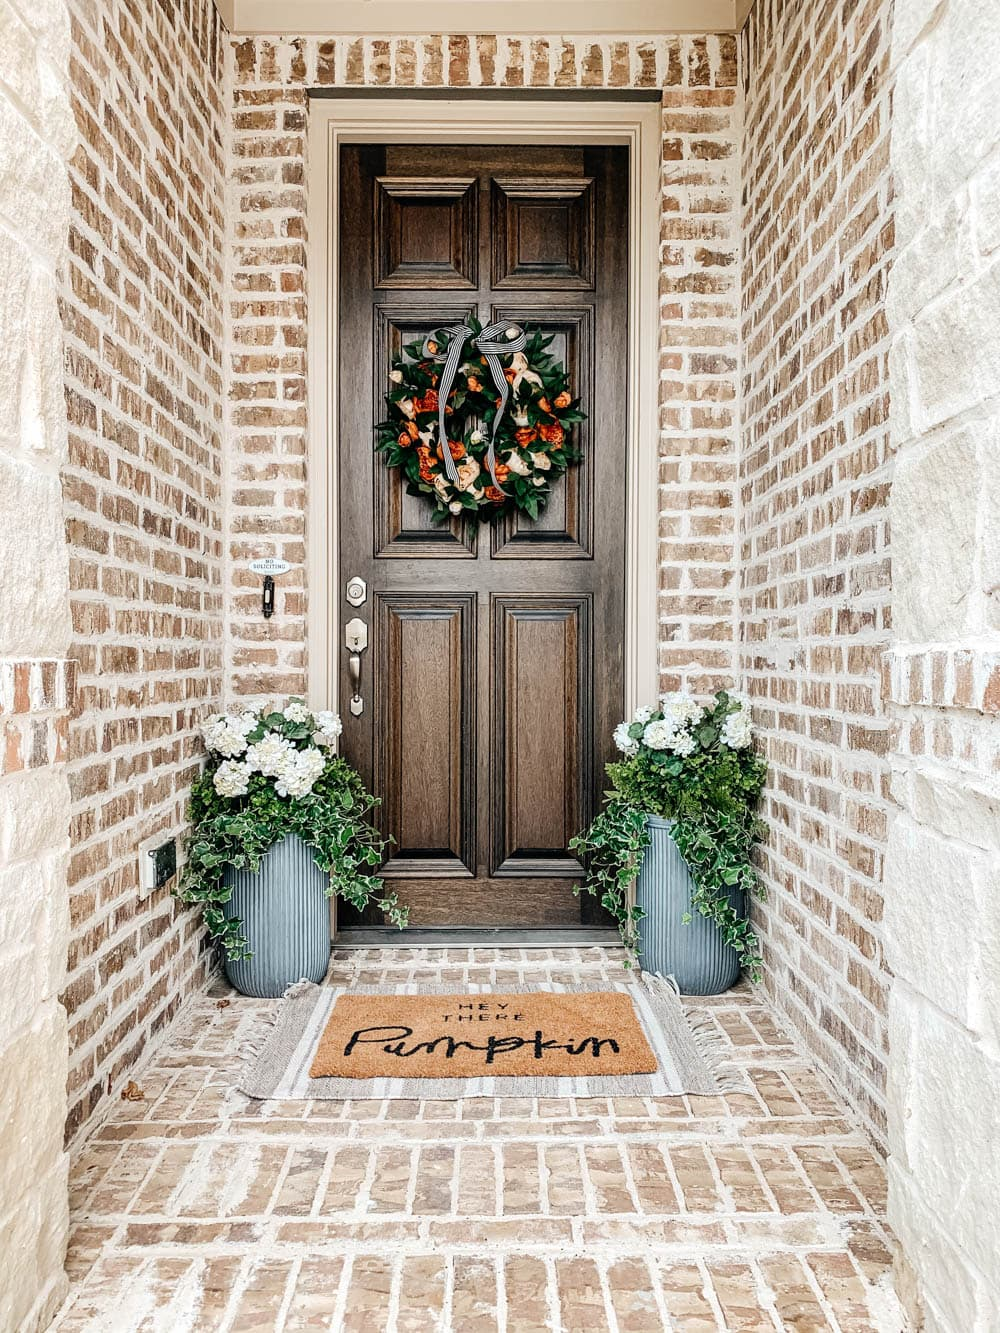 Use a fun welcoming doormat for the season. #ABlissfulNest #falldecor #fallporch